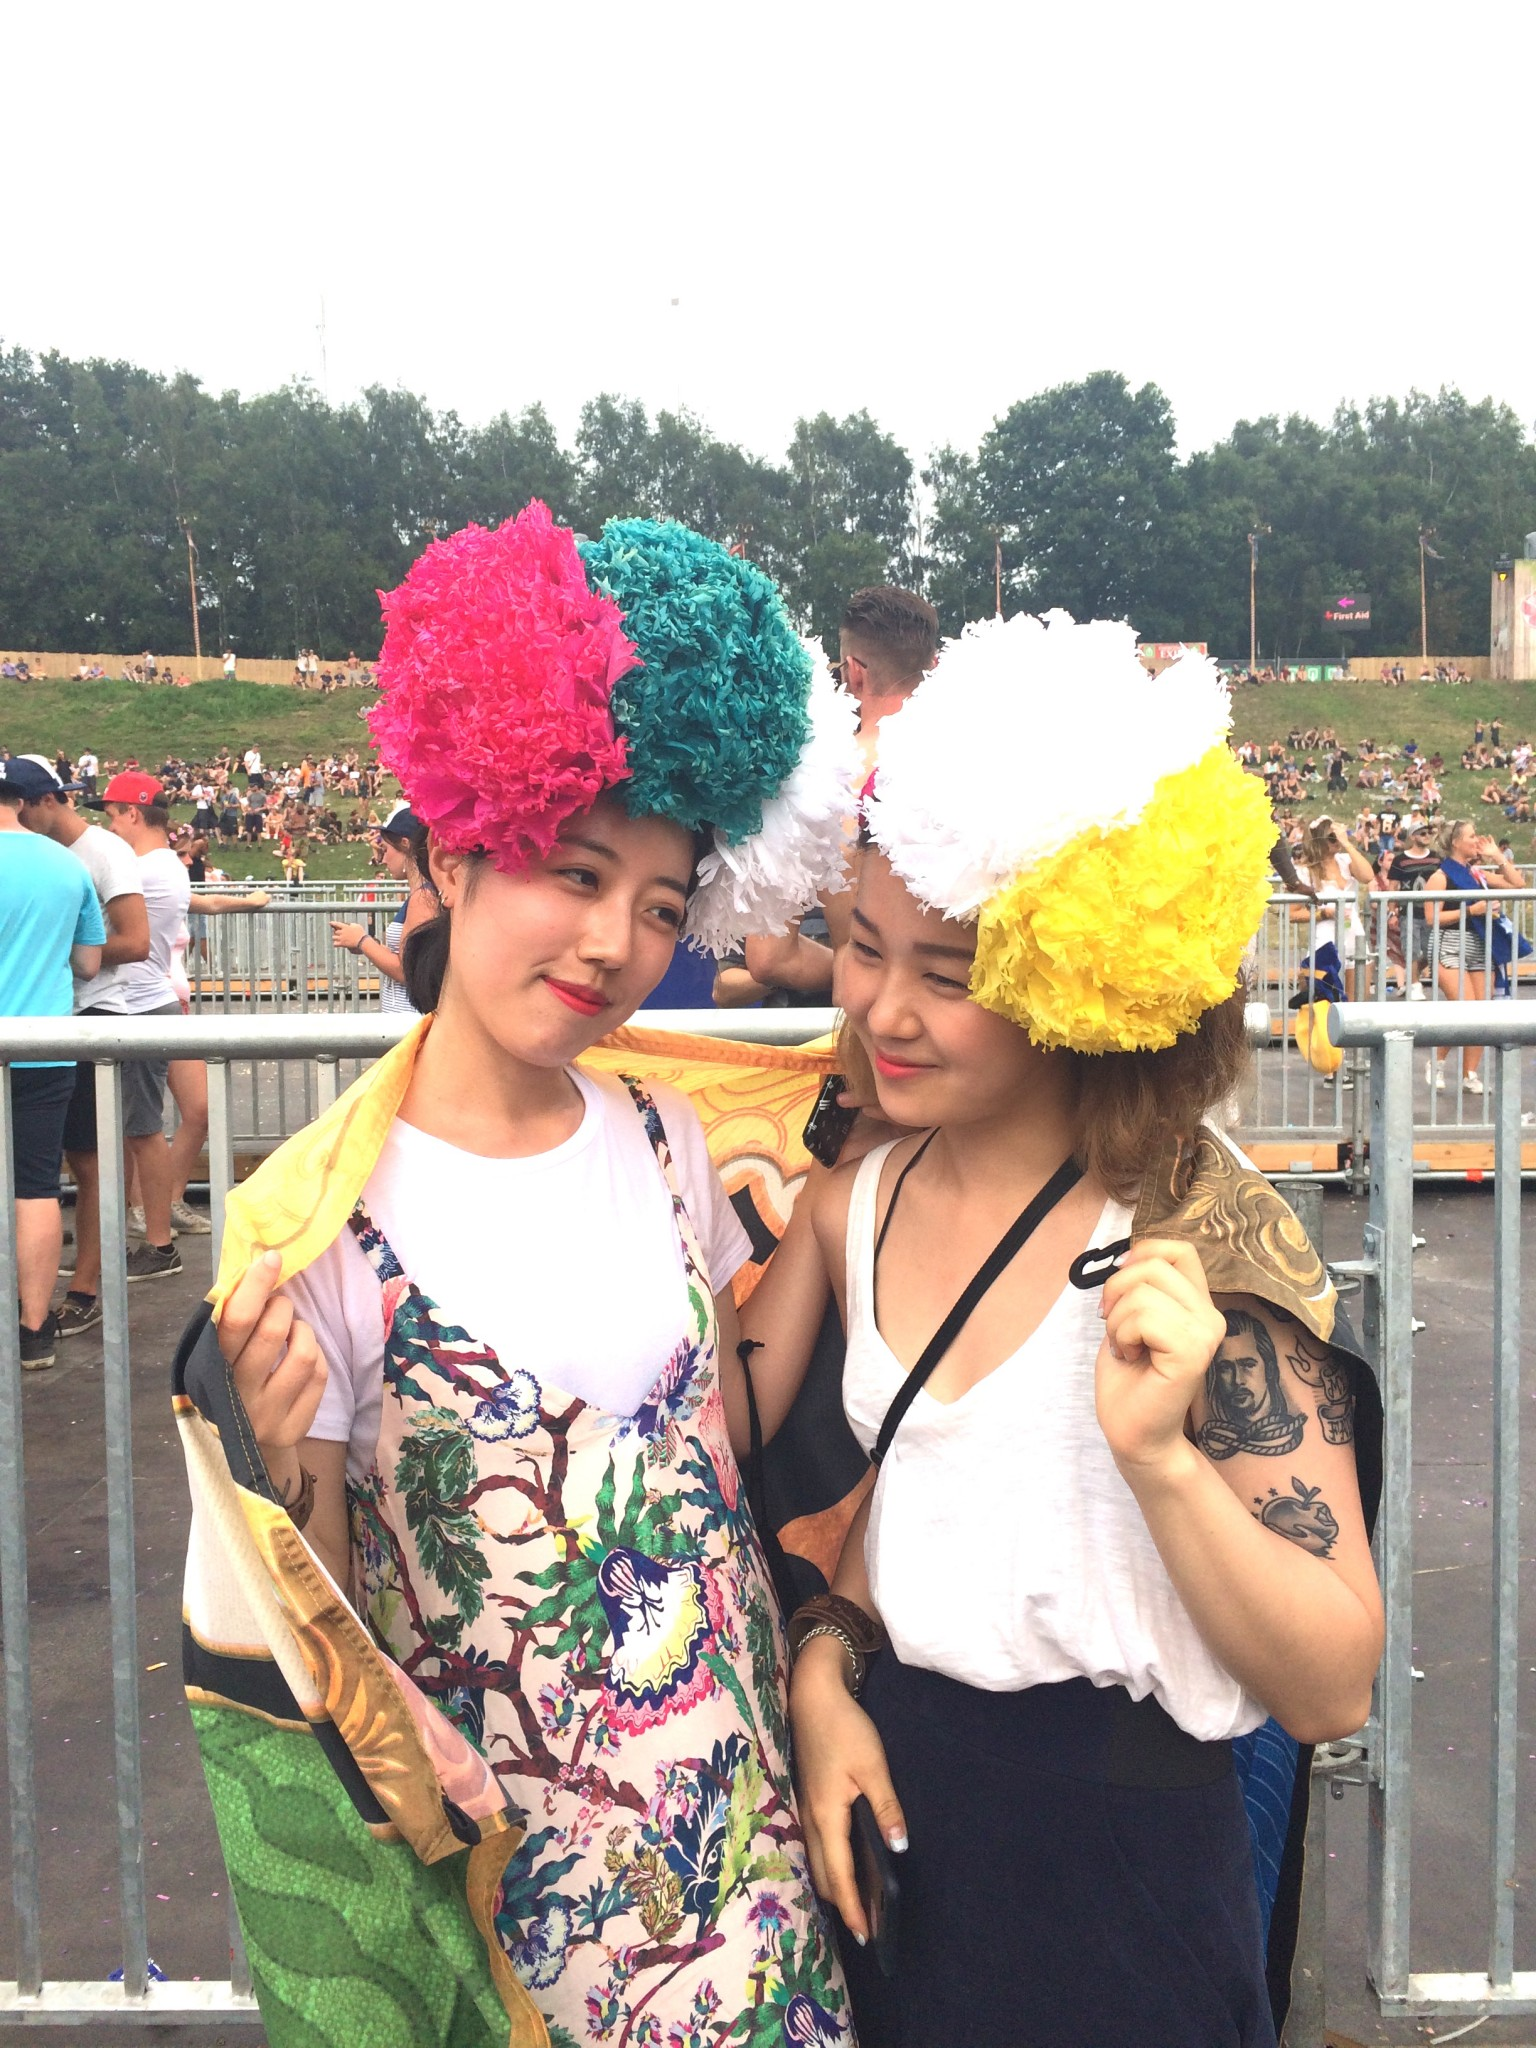 Faces of Tomorrowland